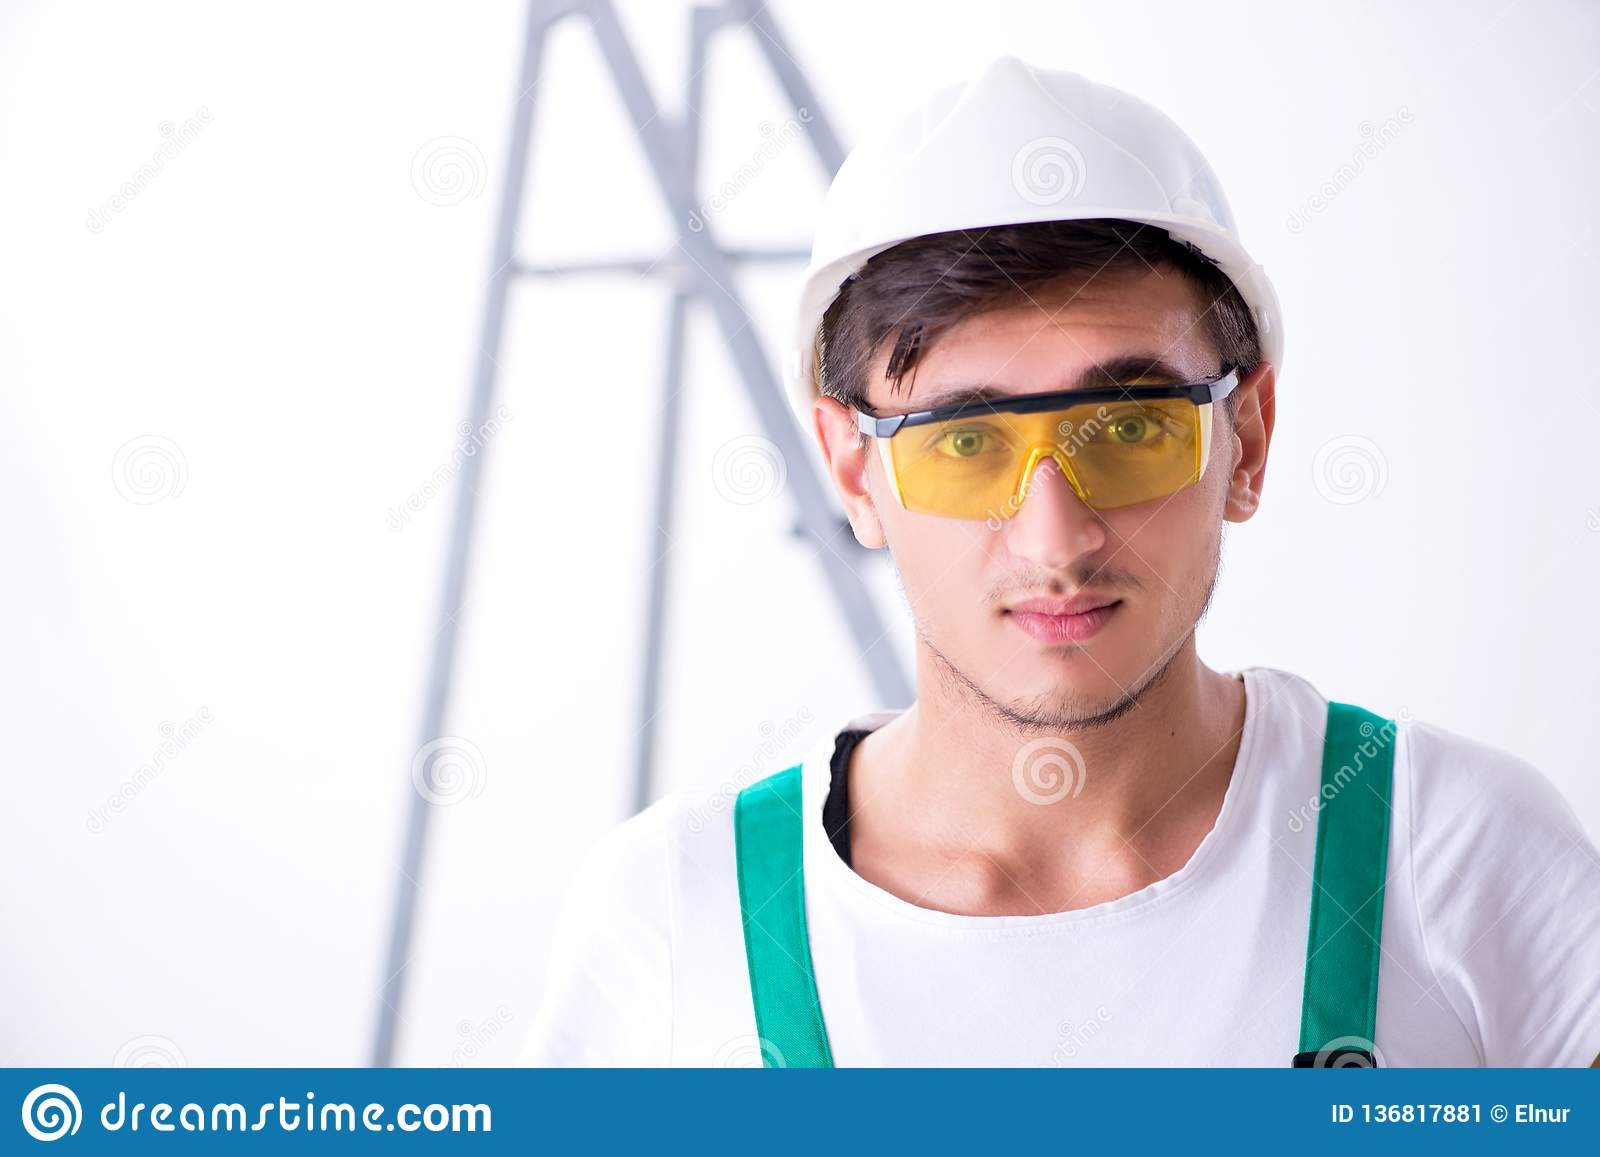 The young worker with protective equipment in safety concept